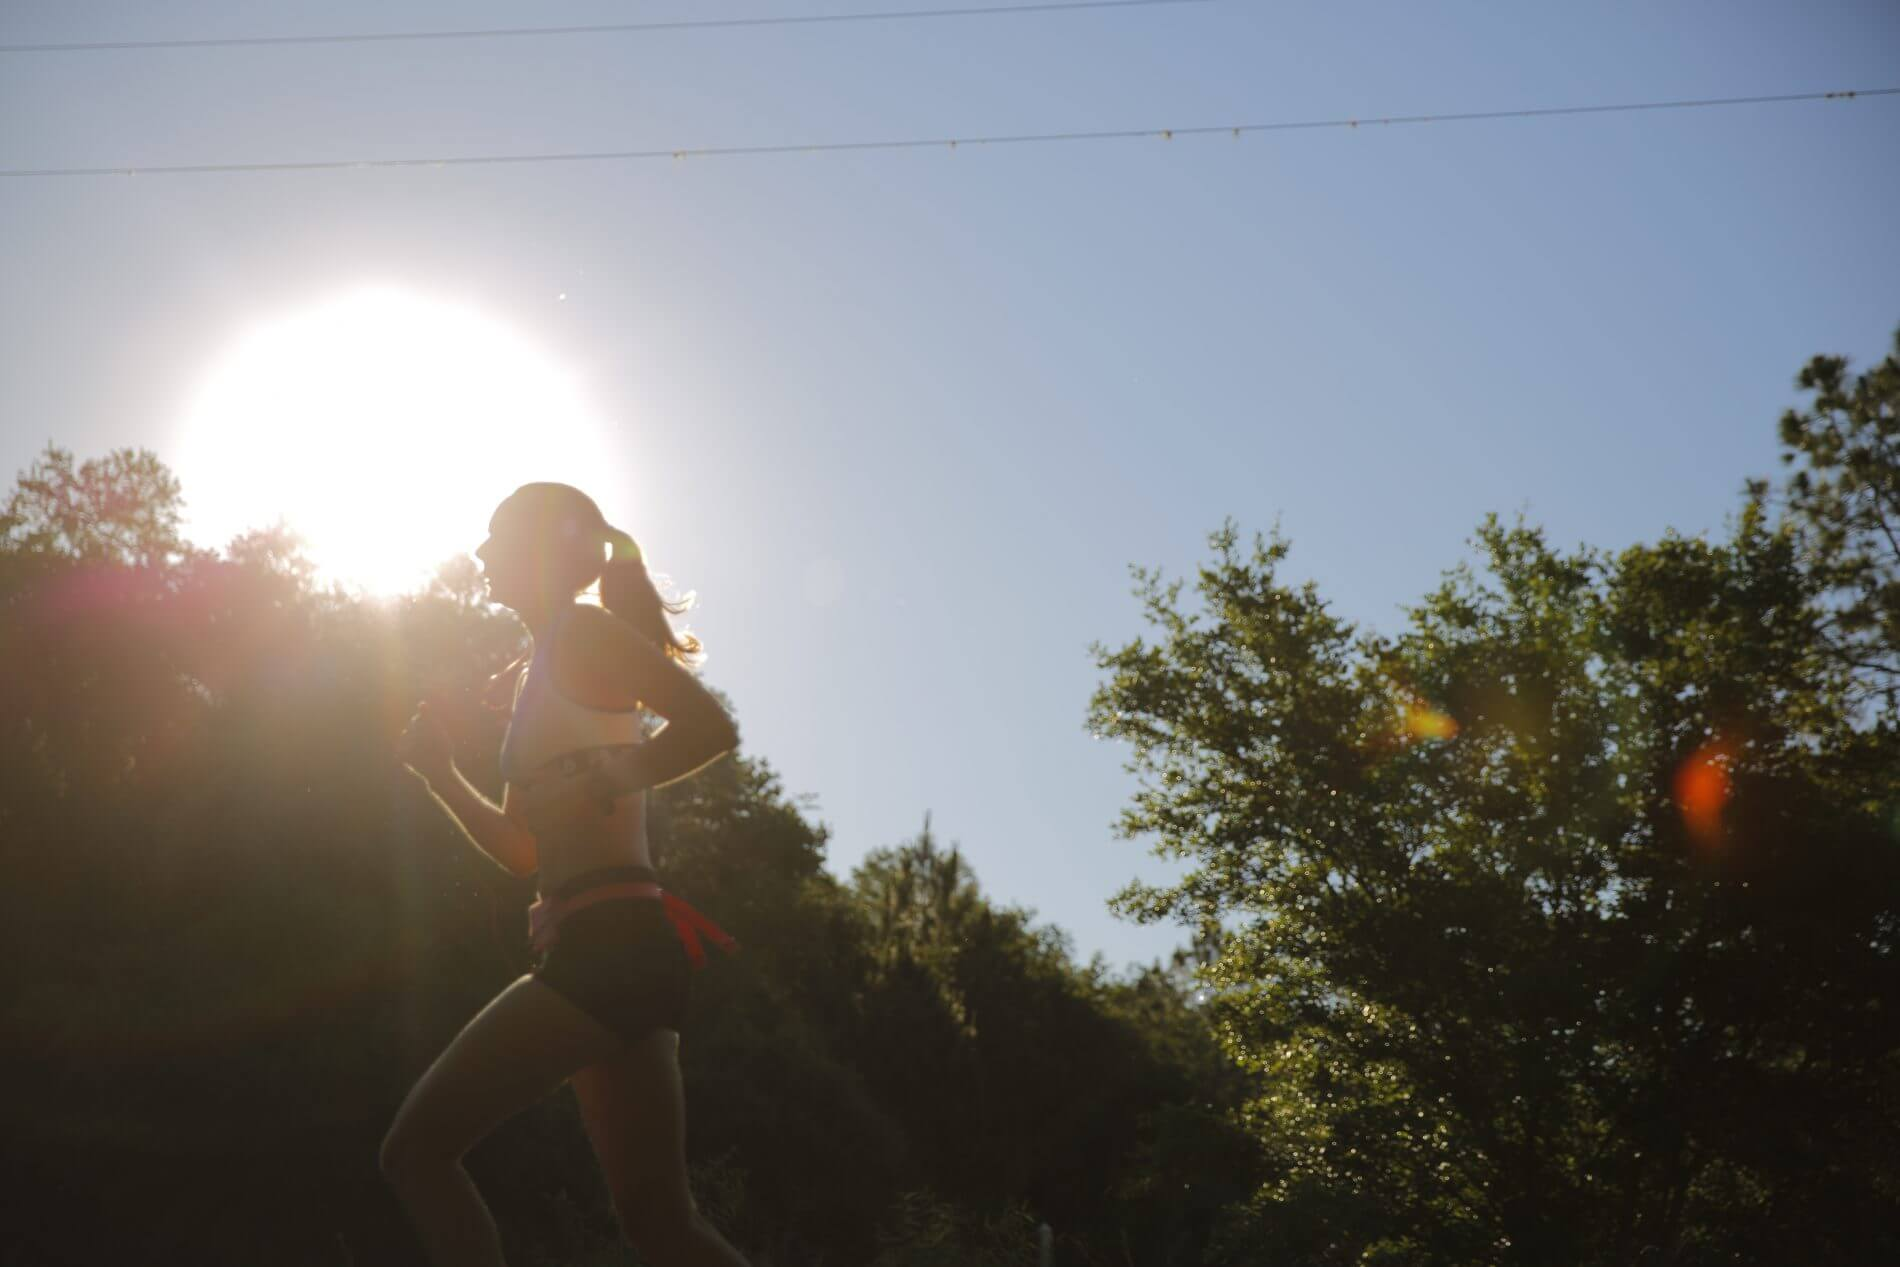 Girl running by herself on a trail with sun and trees in background